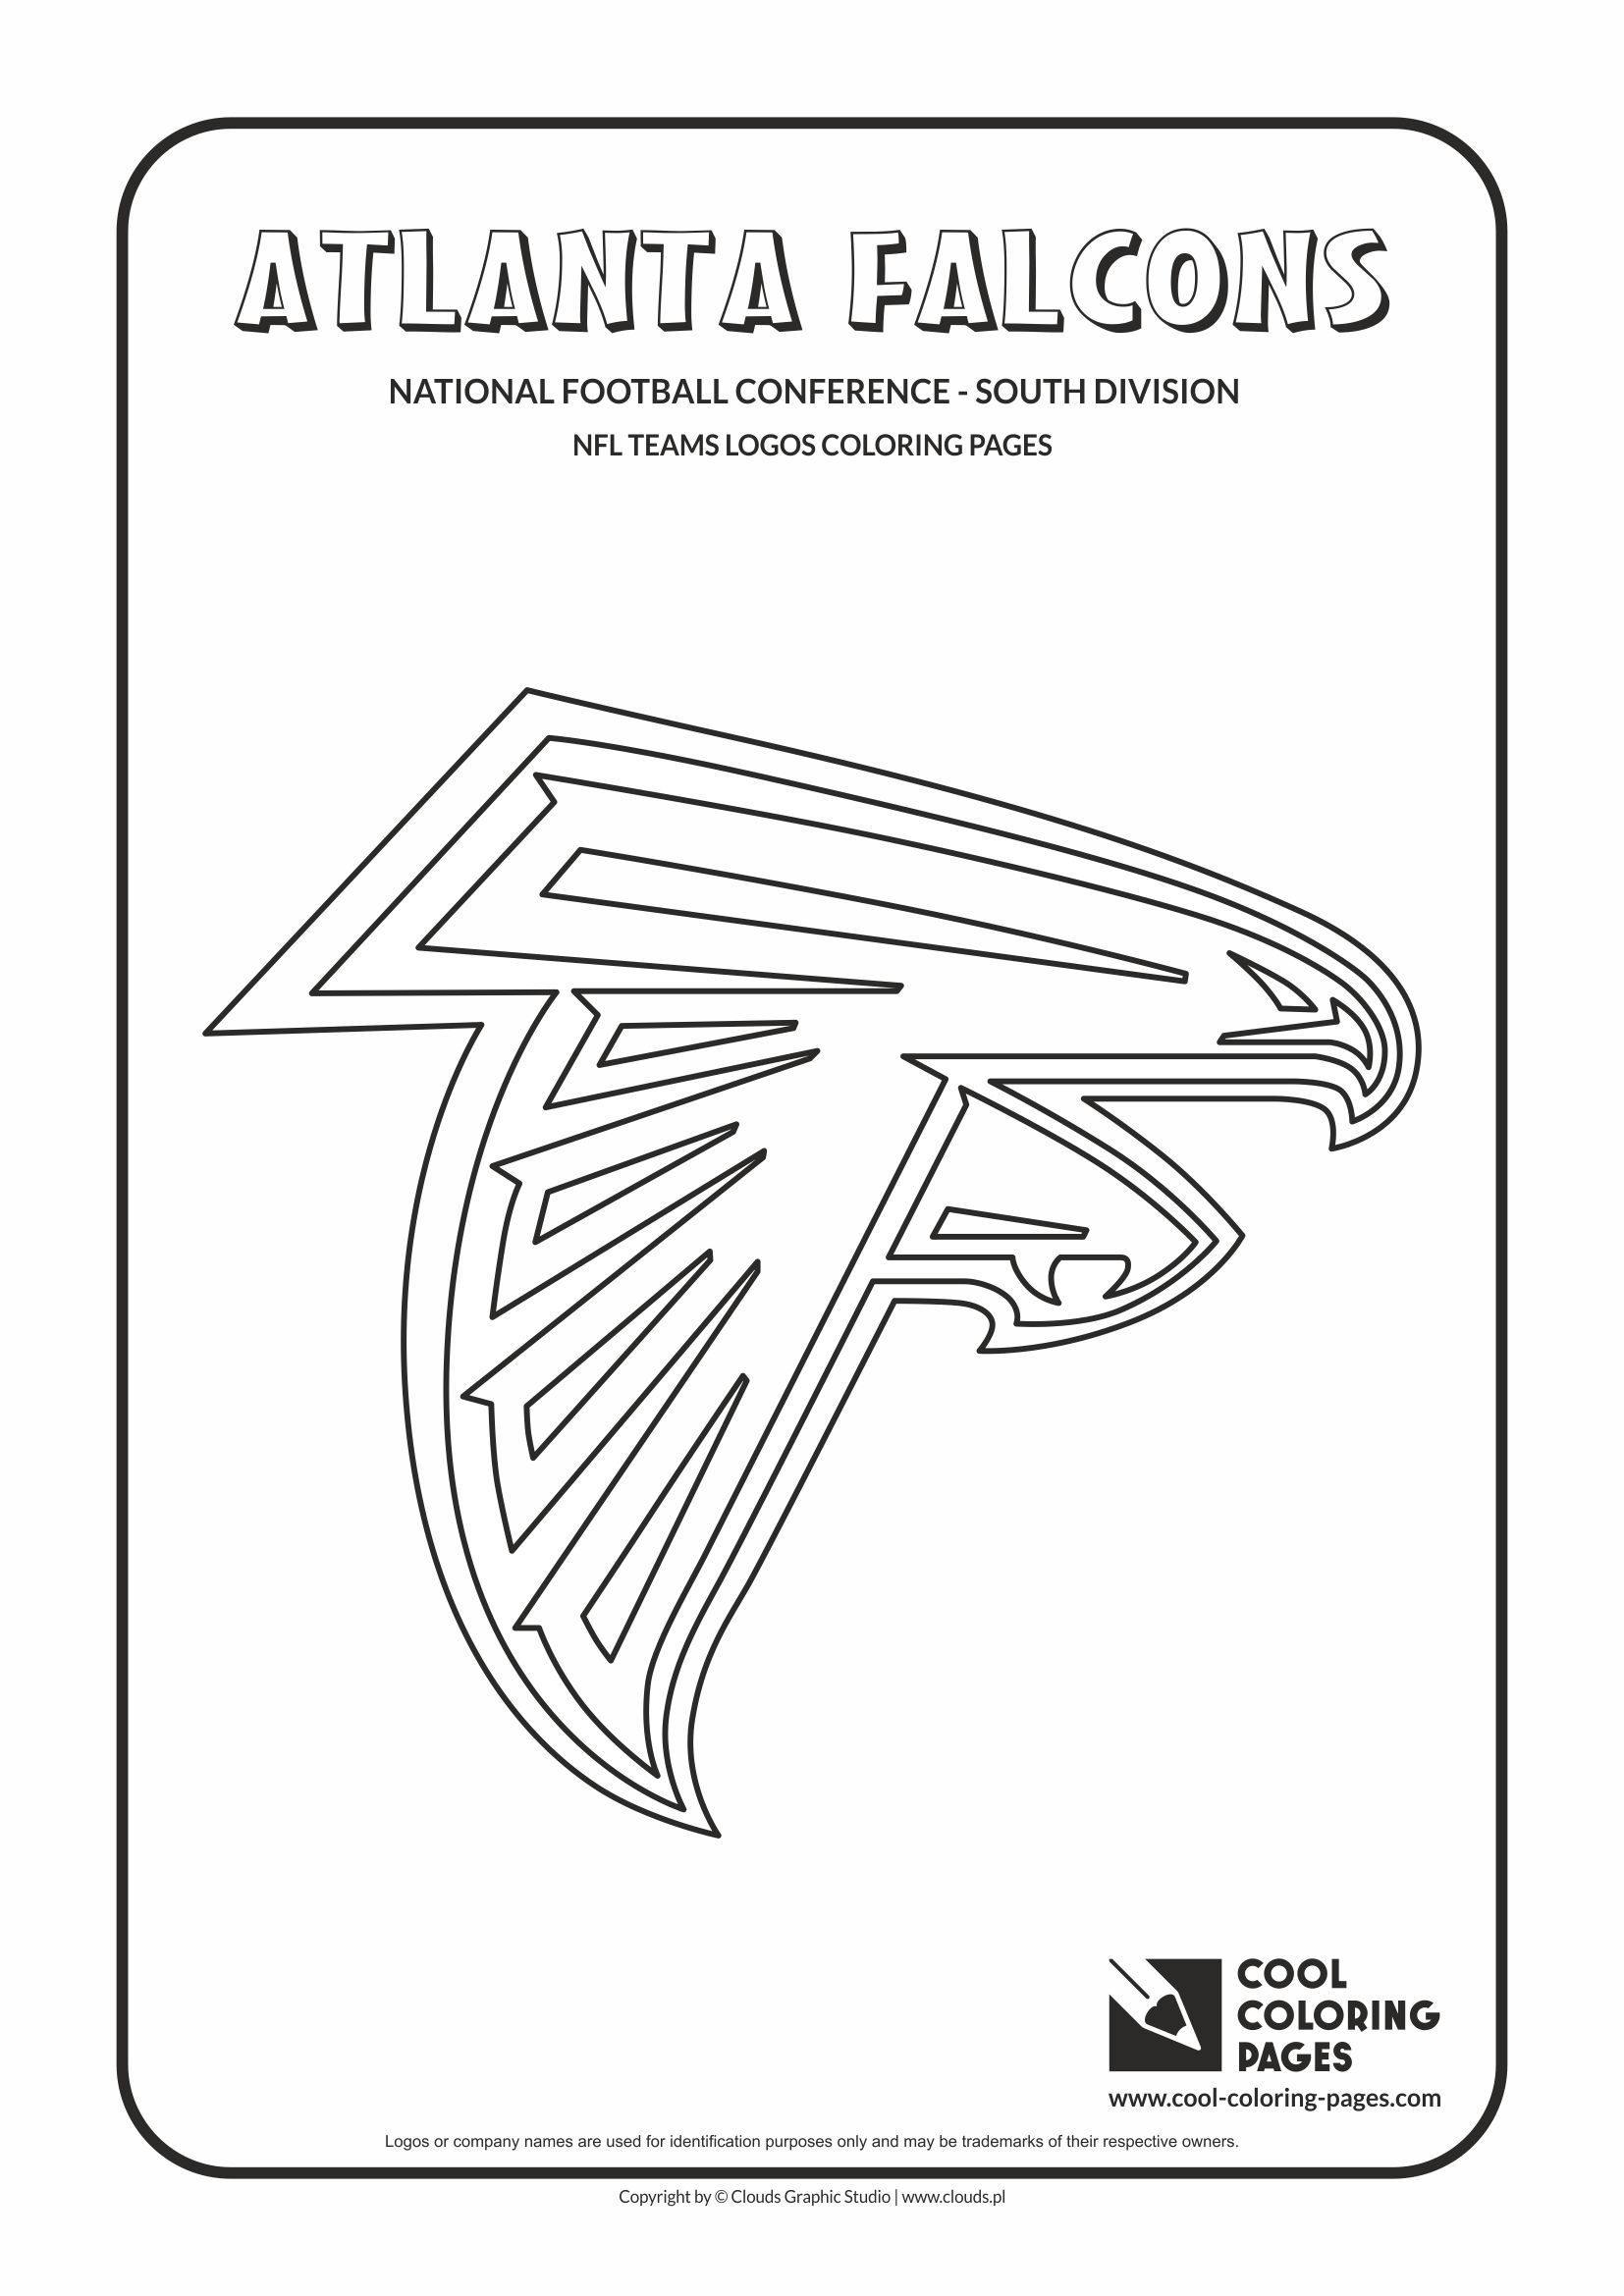 Atlanta Falcons Nfl American Football Teams Logos Coloring Pages